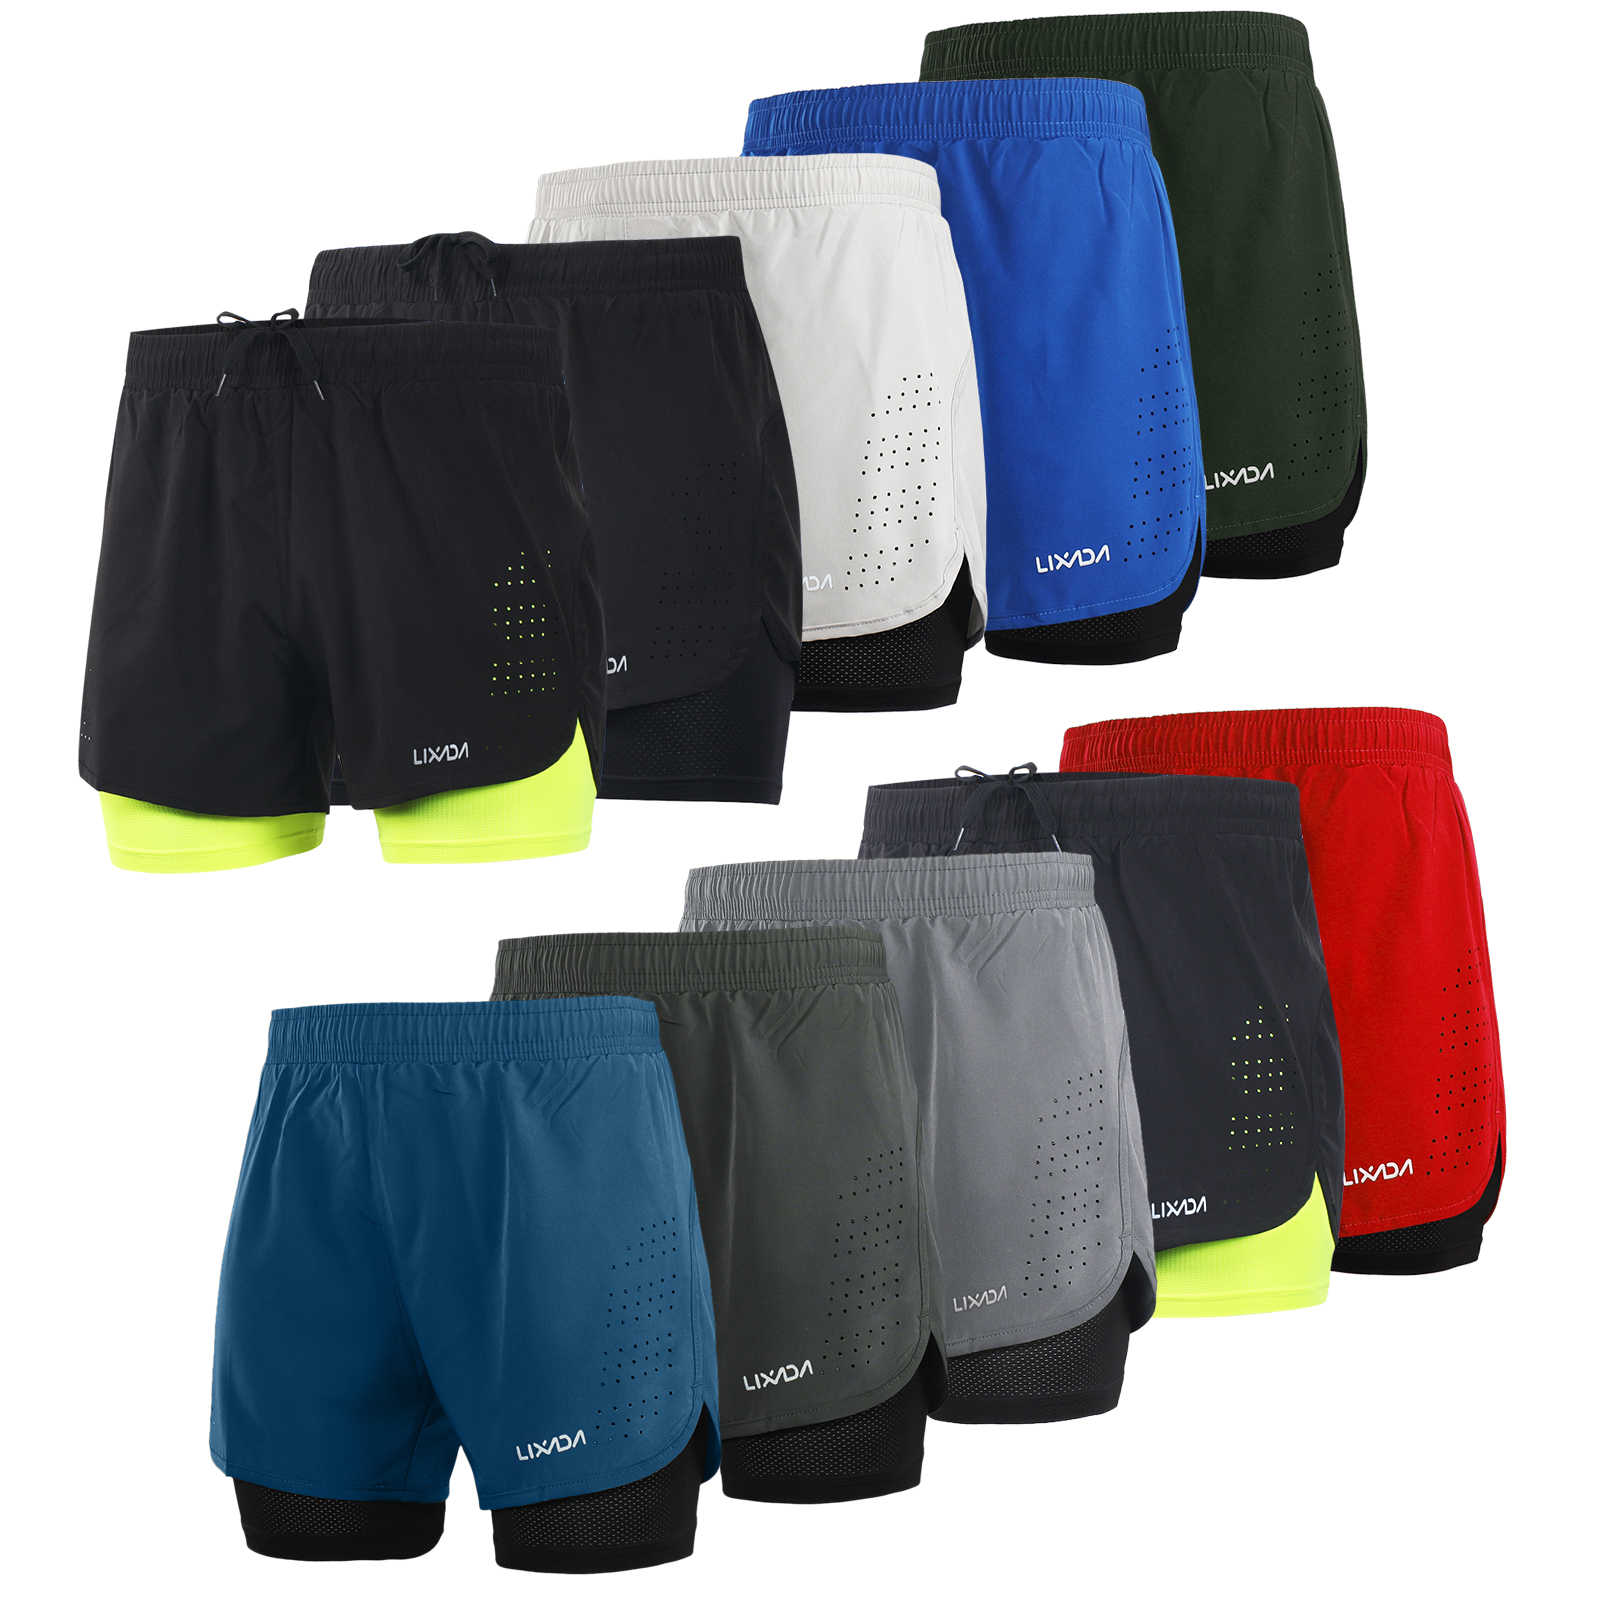 Lixada Men/'s 2-in-1 Running Shorts Quick Drying Breathable Active Training Pants